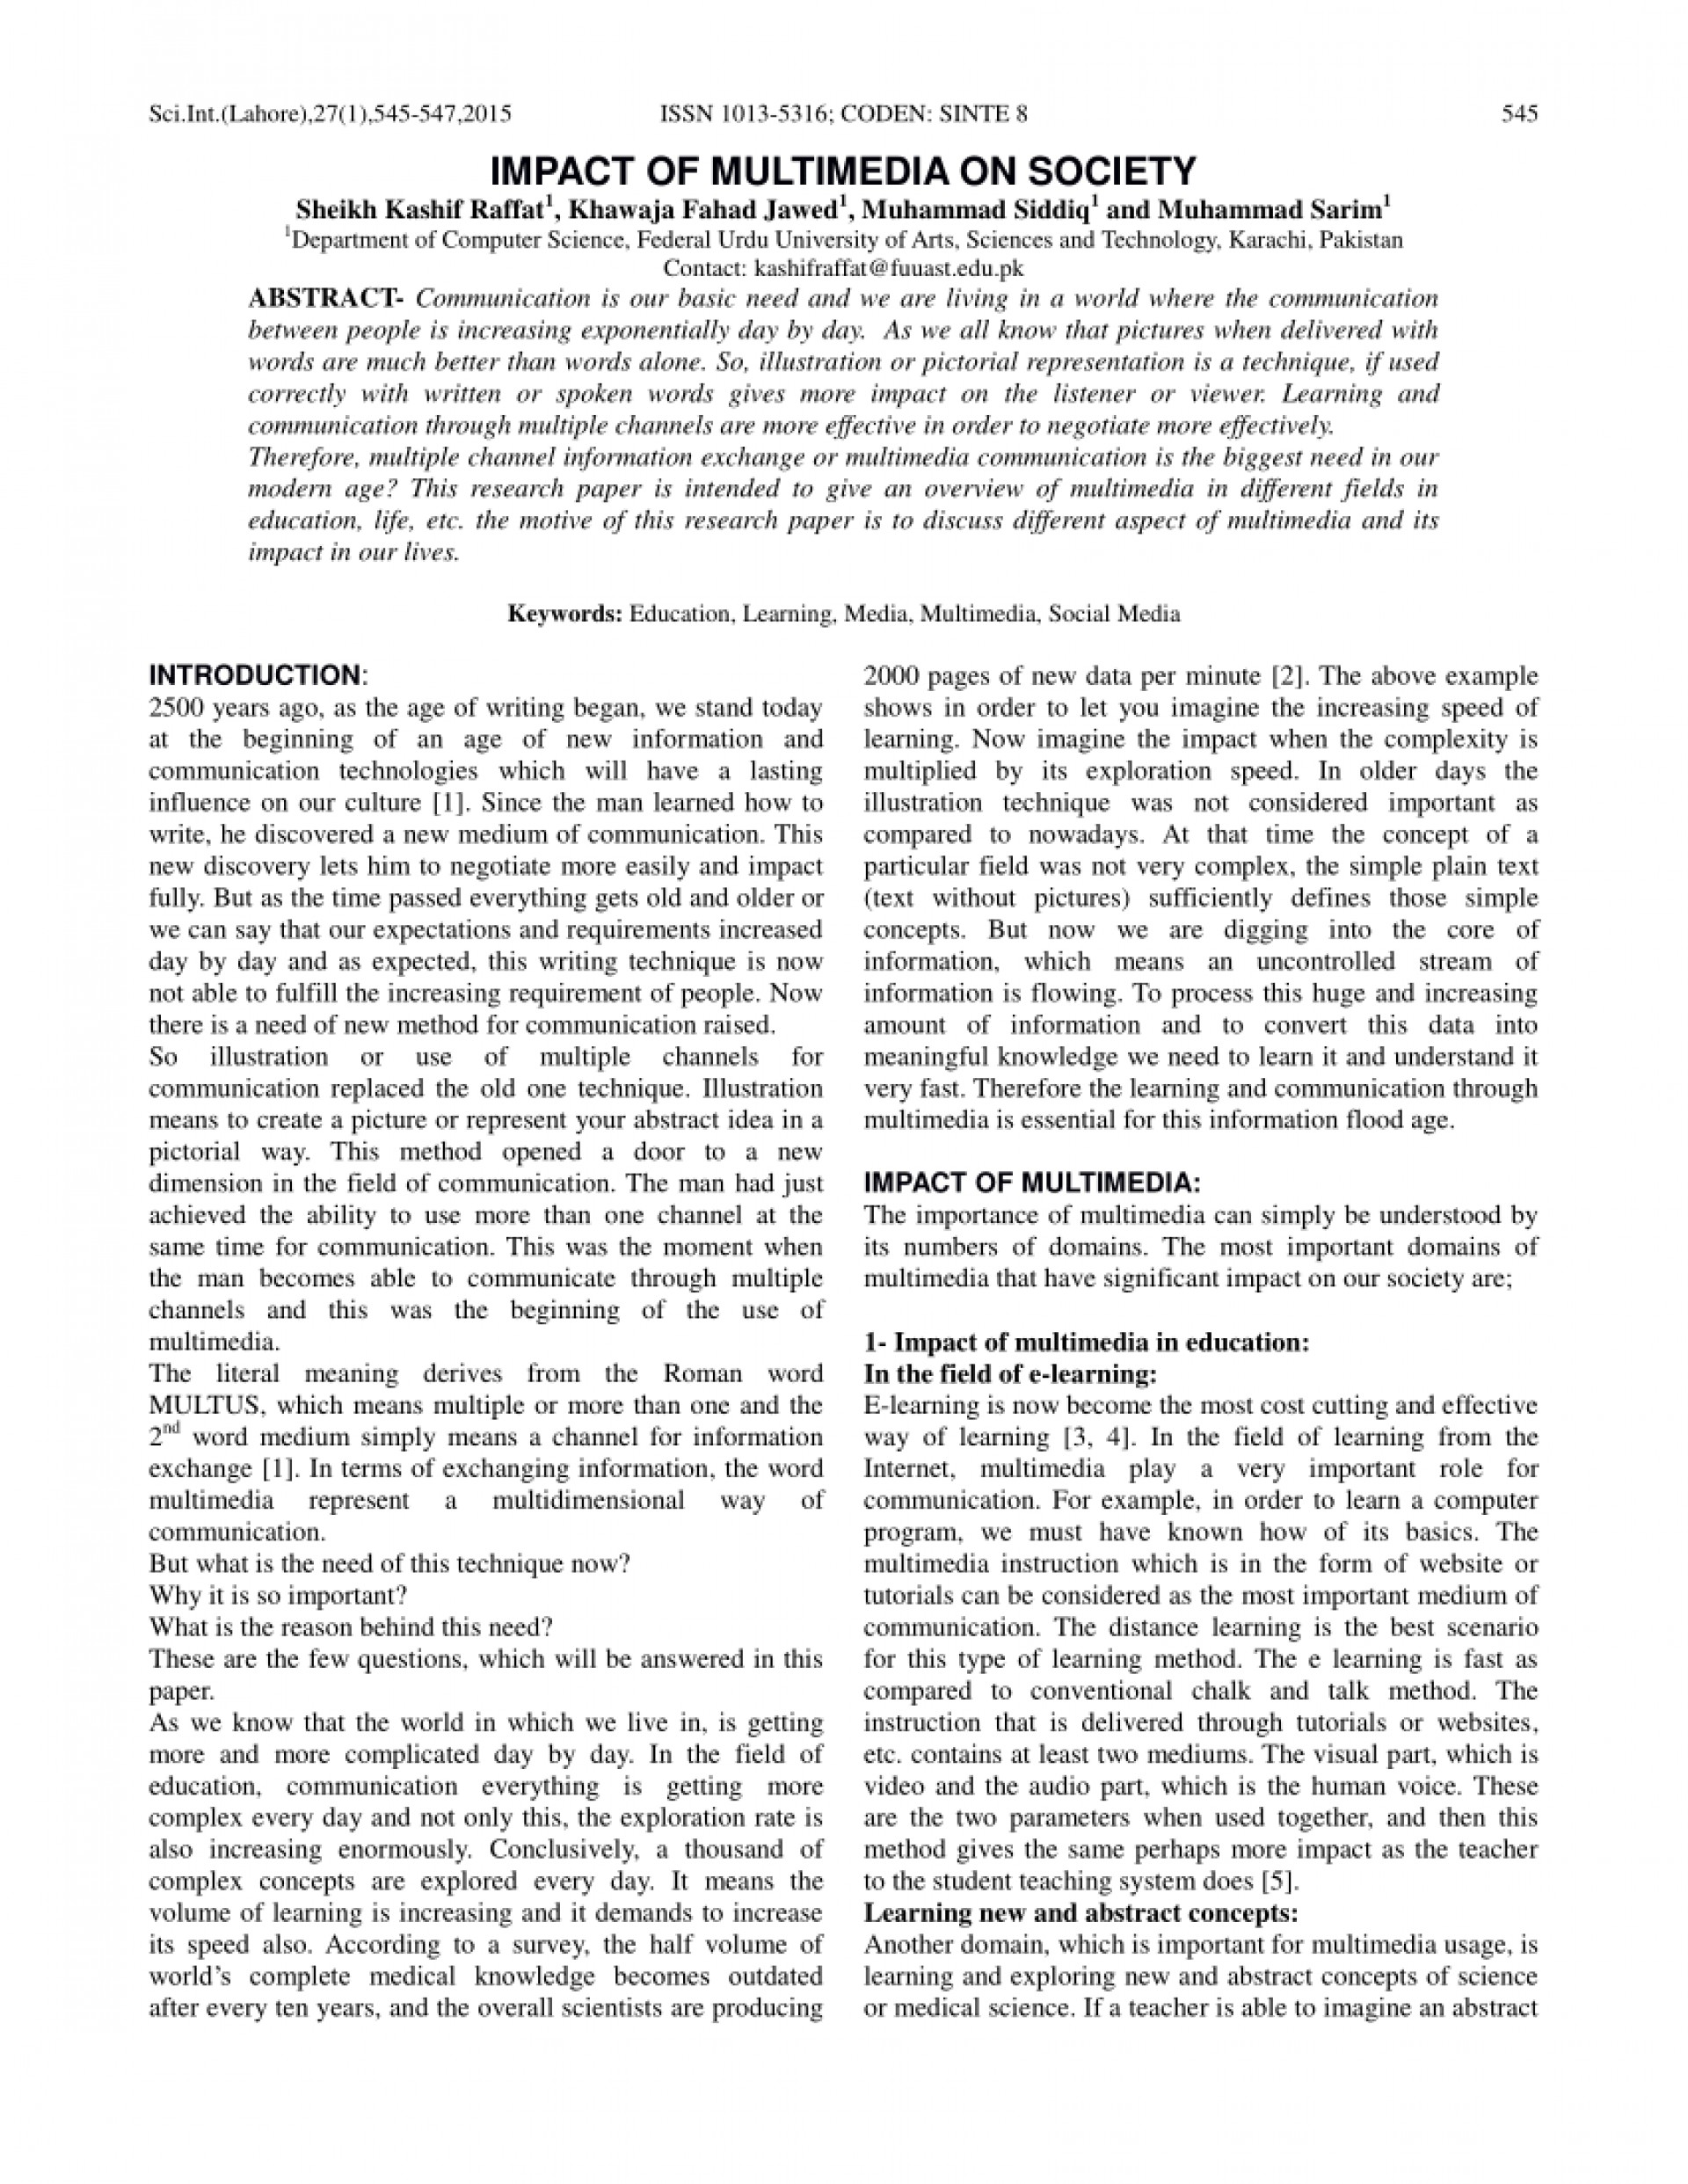 the role of communication in social networks for modern education essay